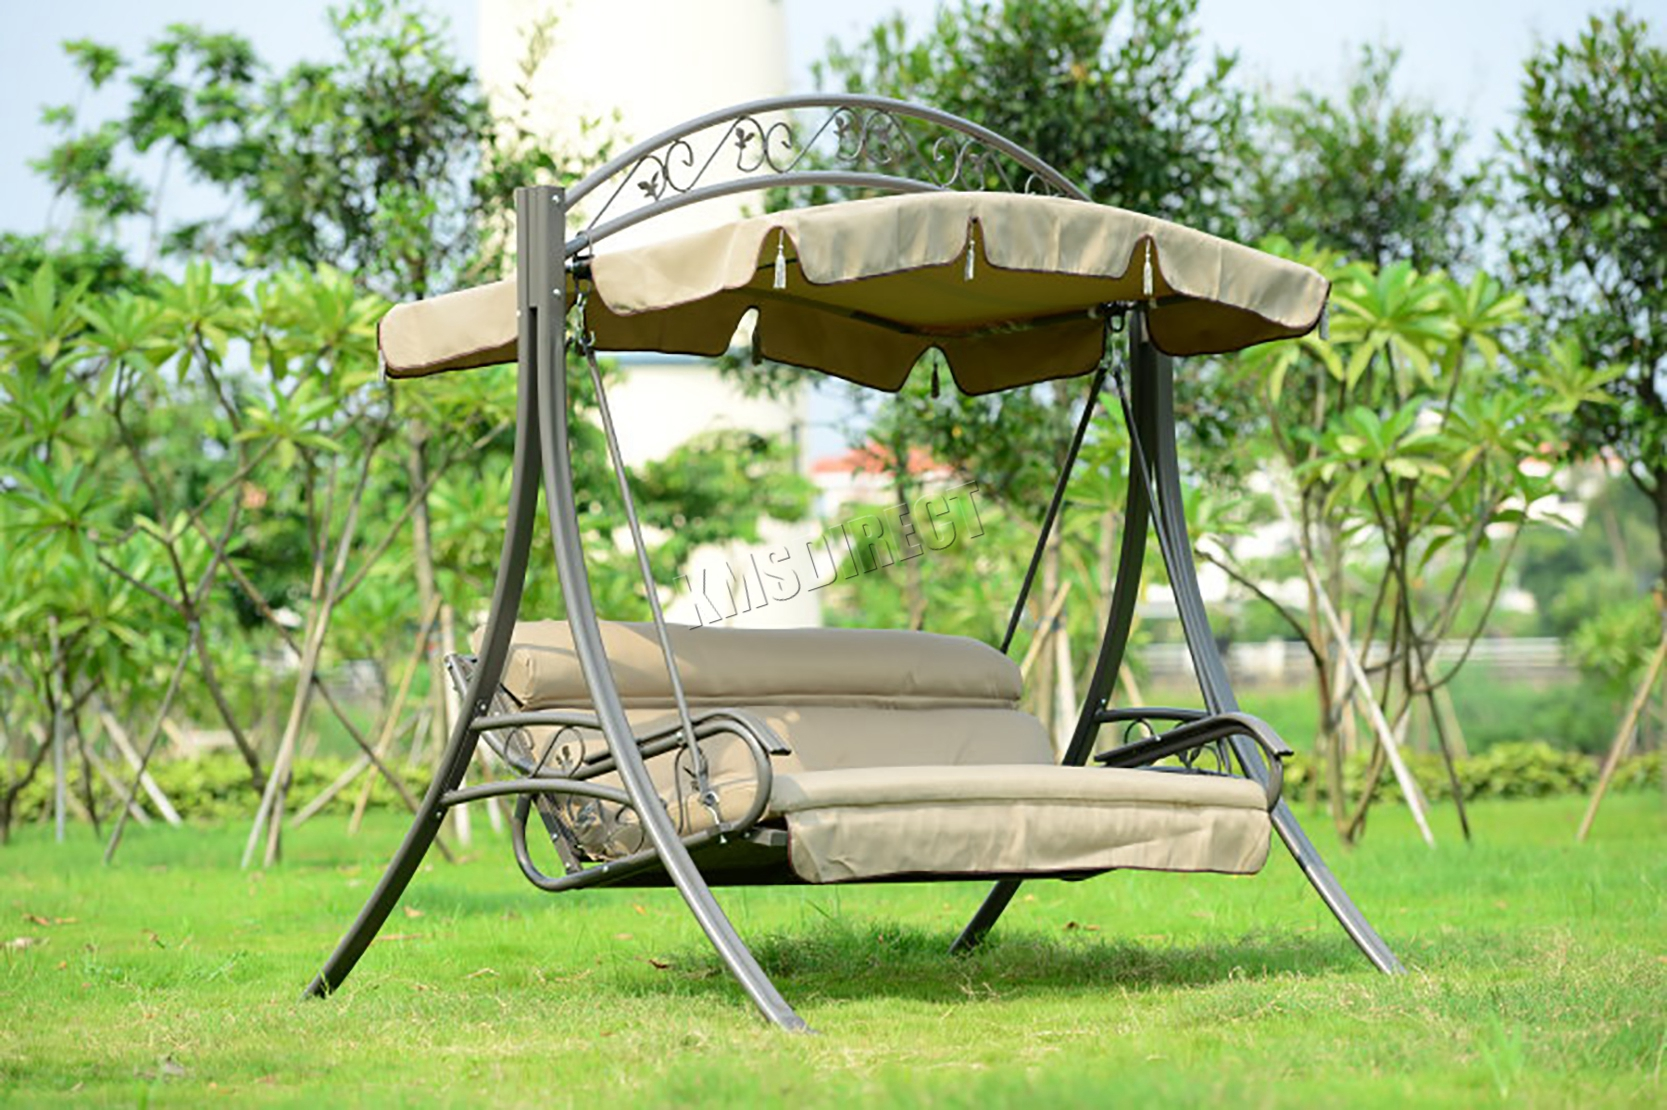 Foxhunter Garden Metal Swing Hammock 3 Seater Chair Bench. Patio Furniture On Sale Gta. La Z Boy Patio Furniture Replacement Cushions. Custom Patio Home Designs. How To Make Patio Furniture With Wooden Pallets. Sarasota Breeze Patio Furniture. Mainstays Patio Furniture Parts. Target Edinborough Patio Furniture. Patio Furniture In Quebec